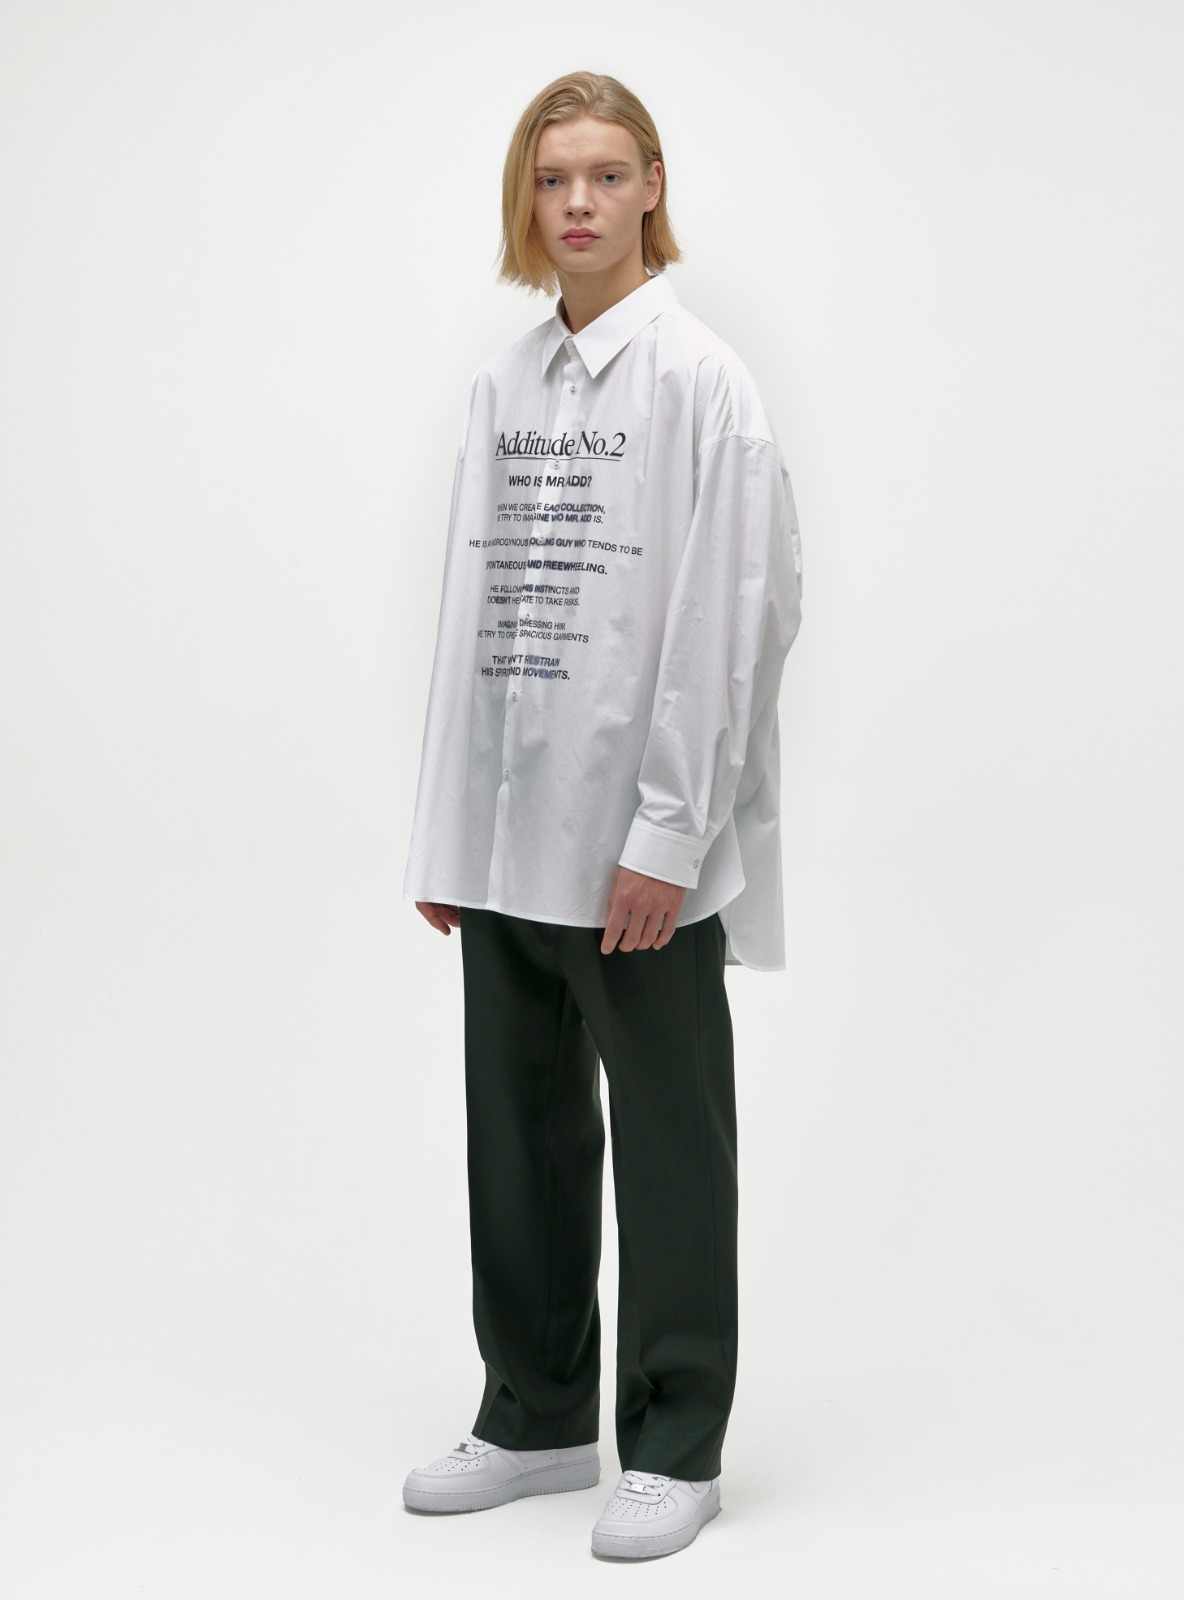 ADDITUDE No.2 SHIRT WHITE